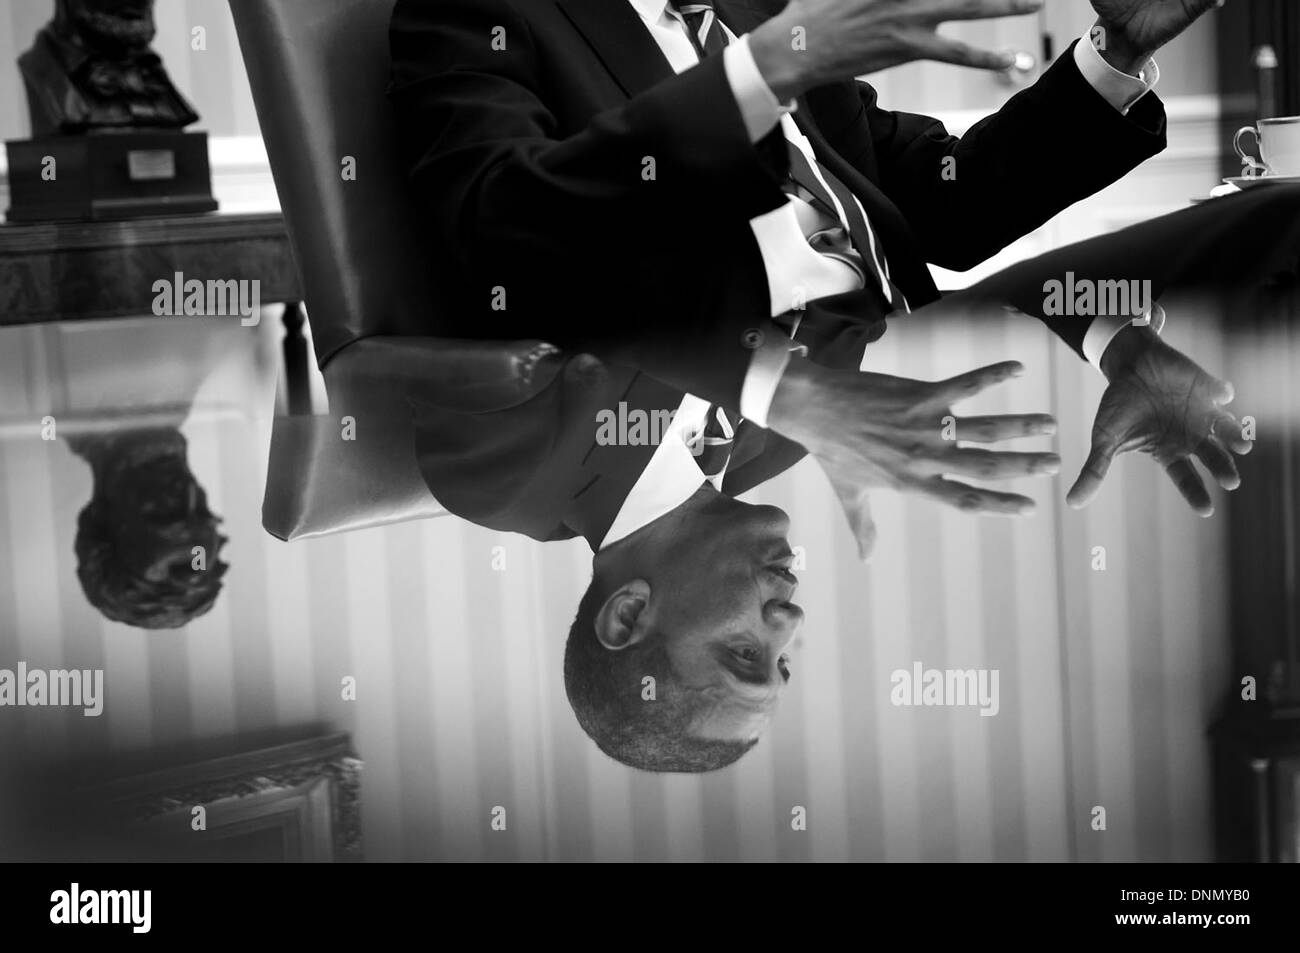 US President Barack Obama is reflected in a glass table top during a meeting in the Oval Office of the White House Stock Photo